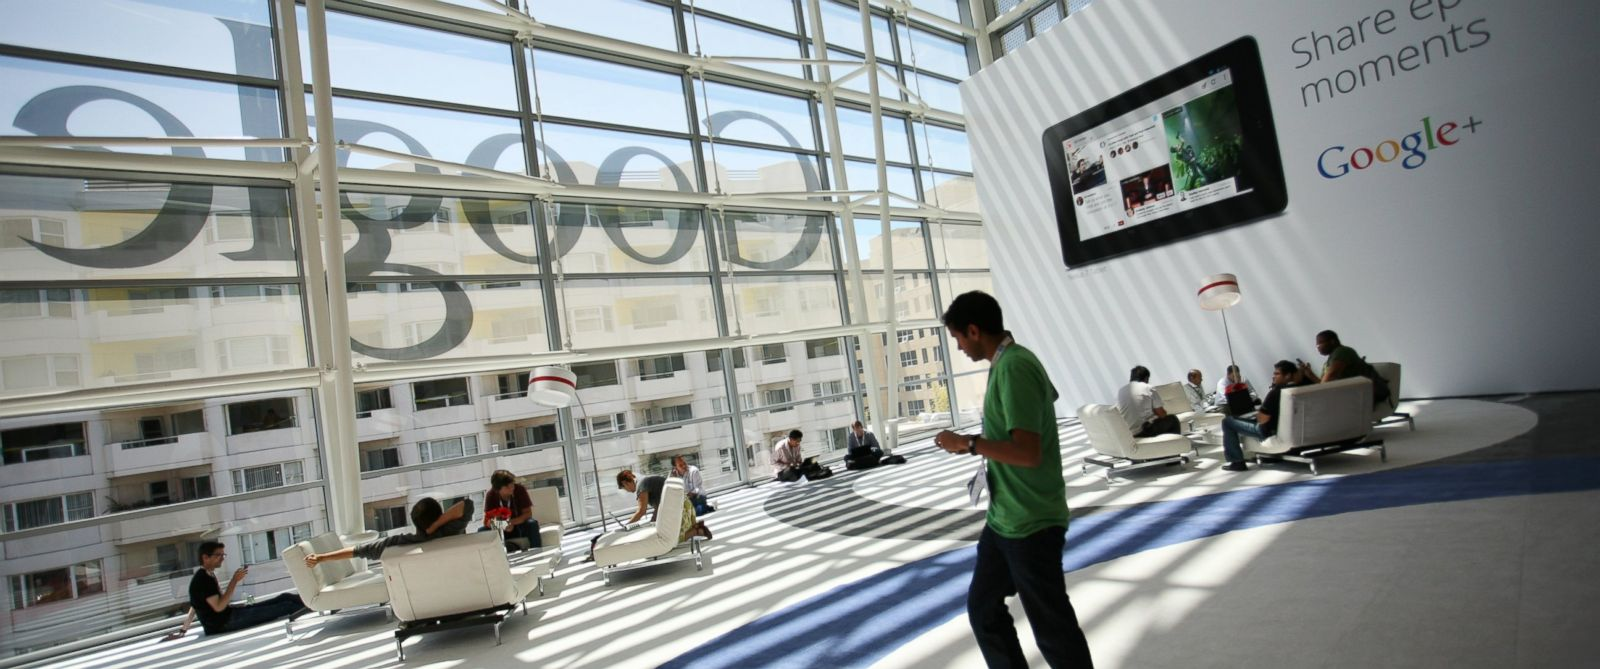 PHOTO: A Google logo is seen through windows of Moscone Center in San Francisco during Googles annual developer conference in San Francisco on June 28, 2012.